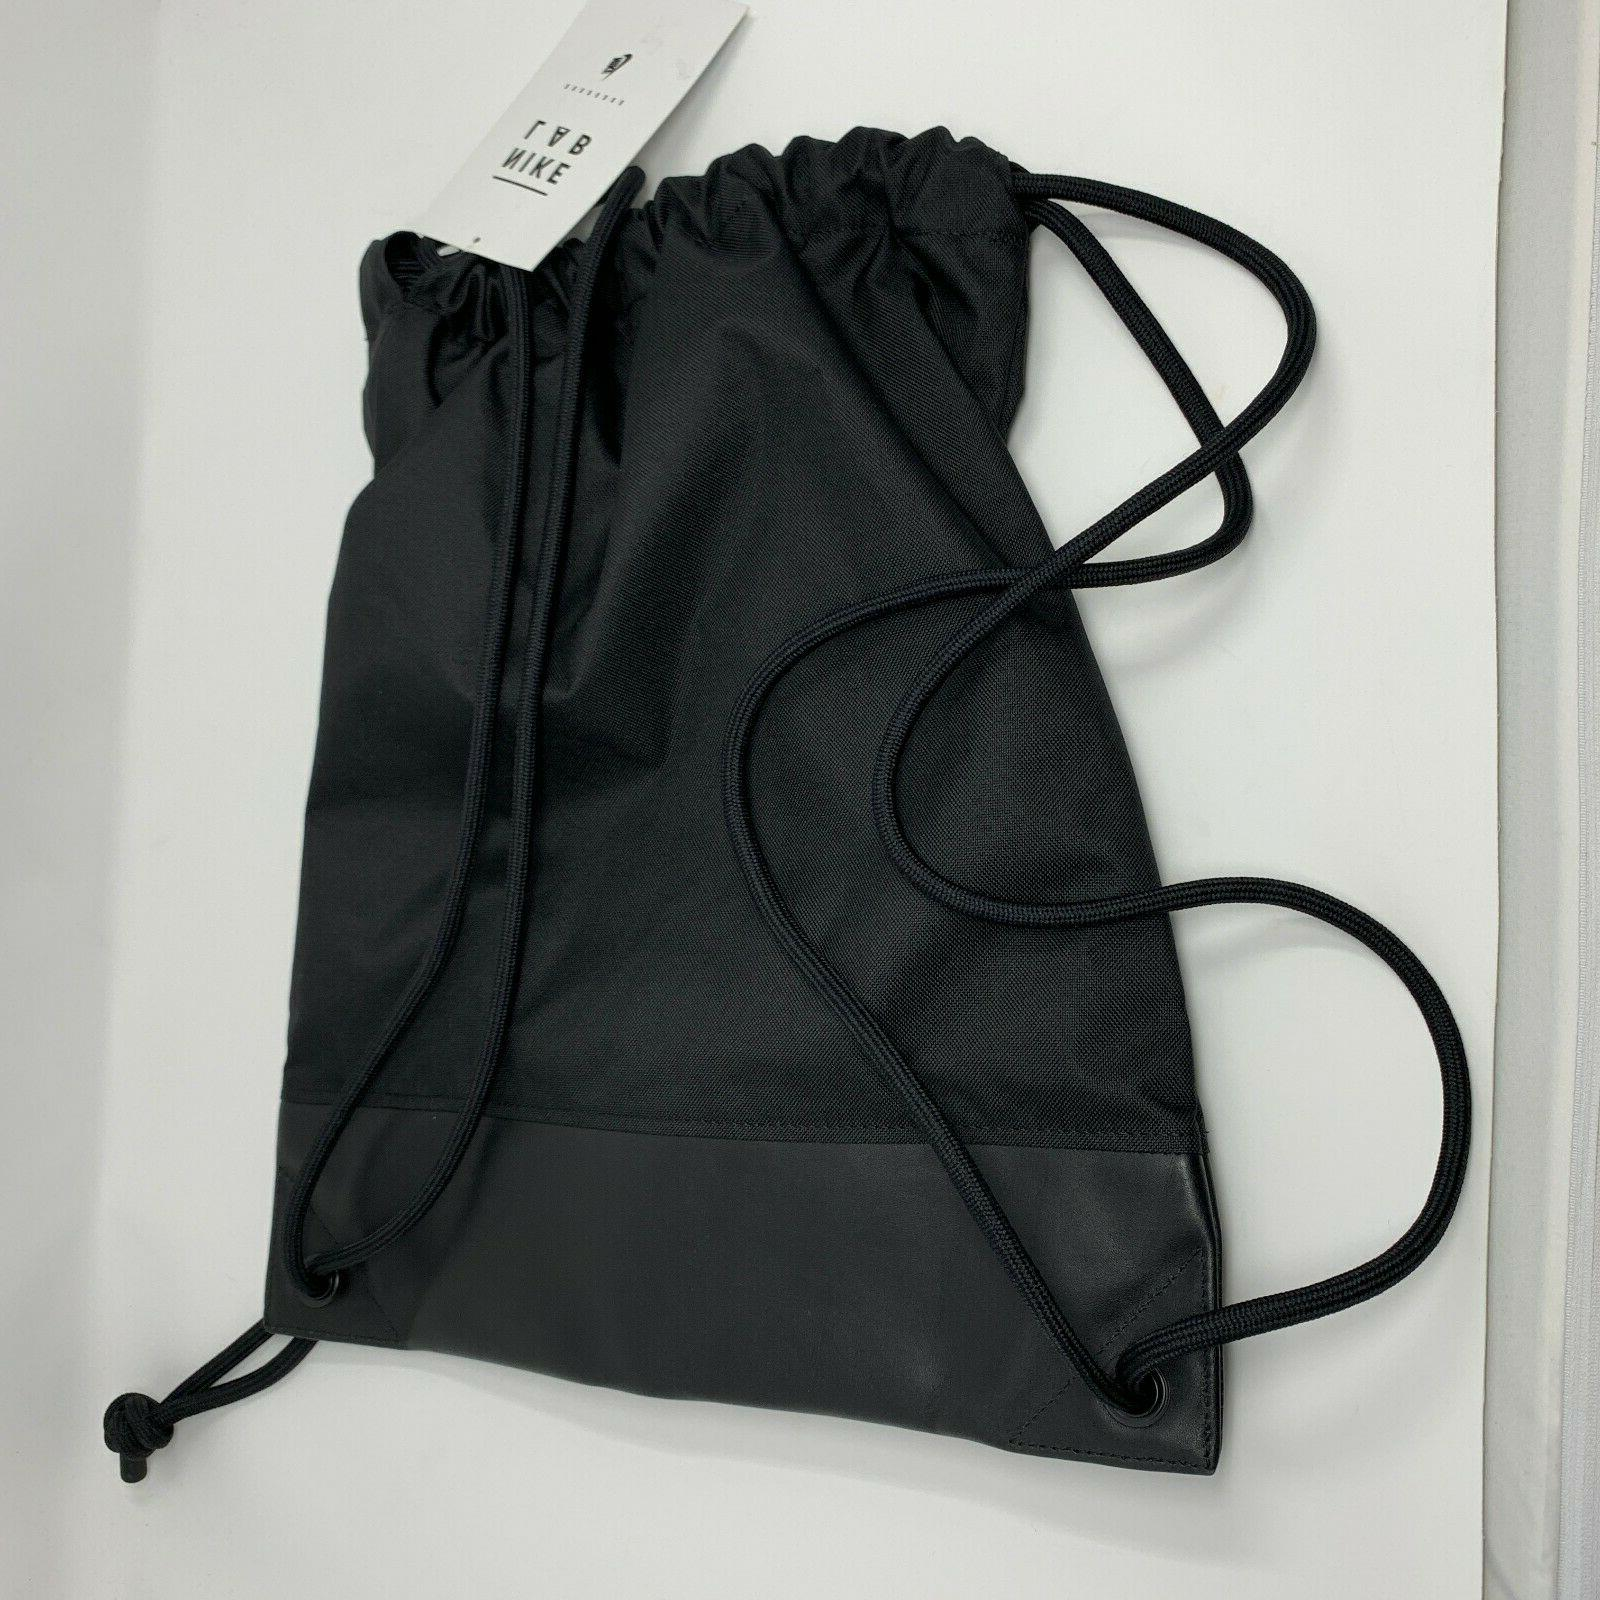 NikeLab Gym Sack Black Drawstring Unisex 17'' X 15''